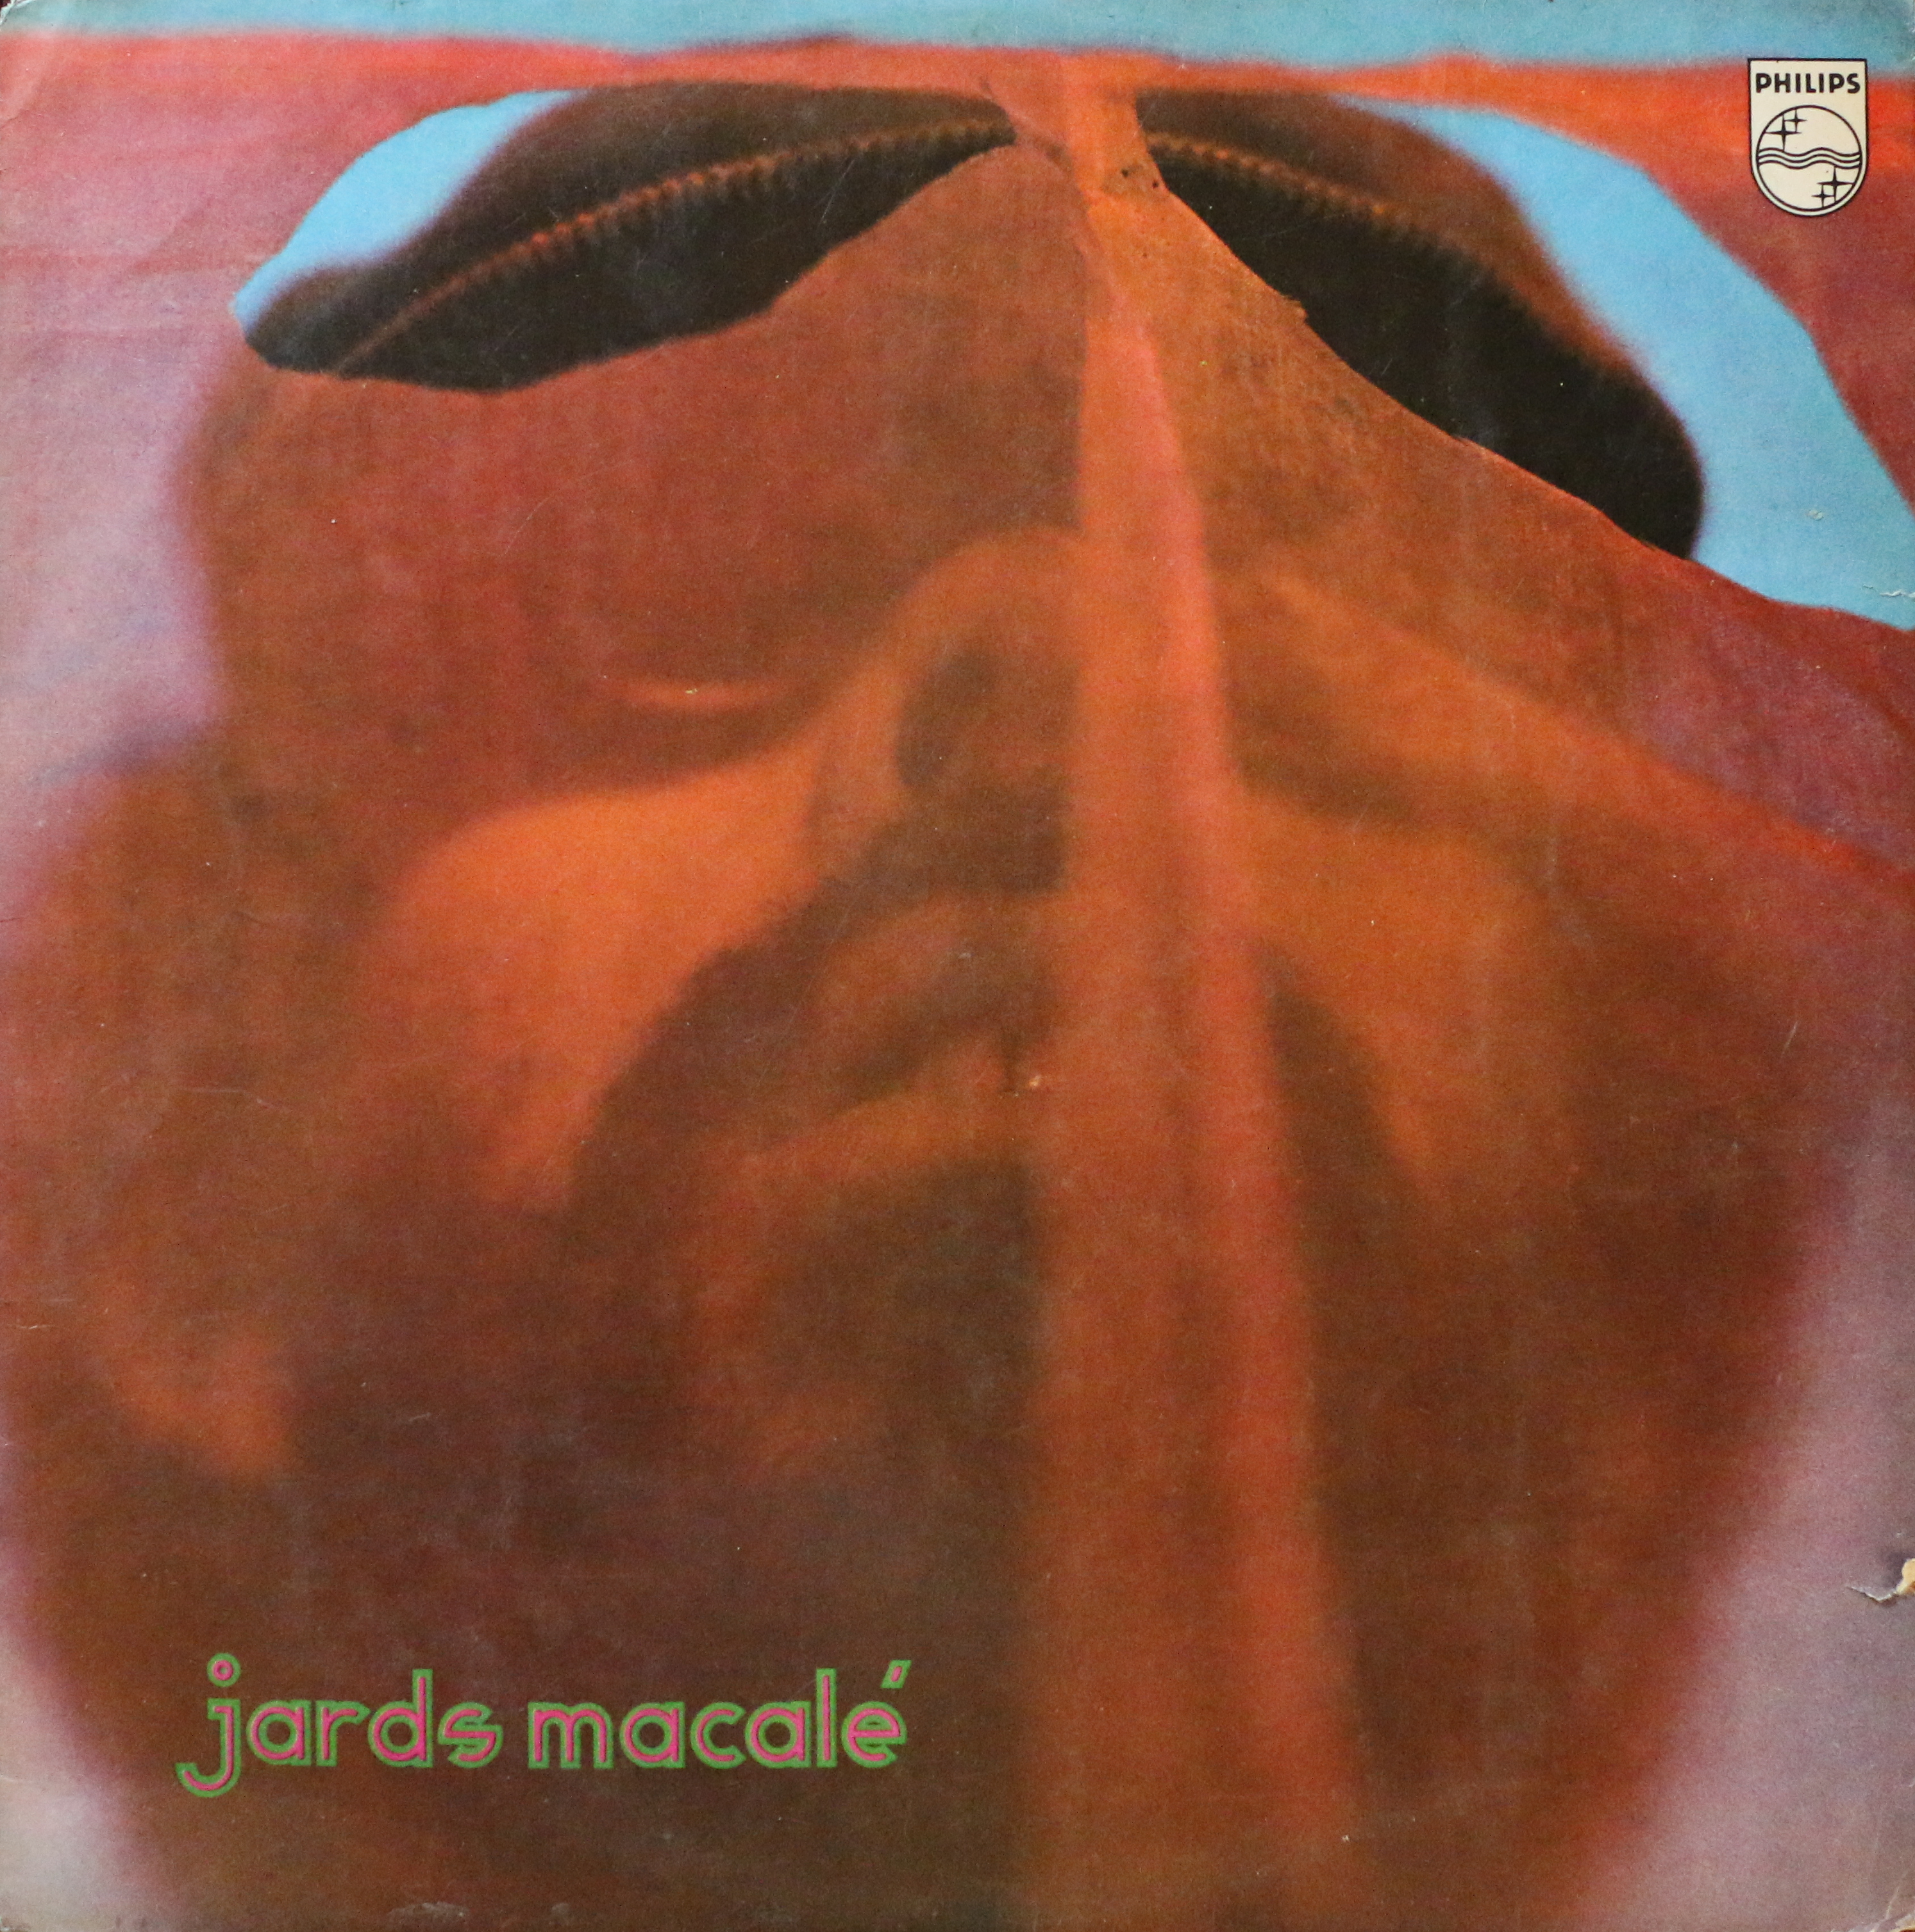 Dig Deep: Jards Macalé - S/T - Philips (1972)